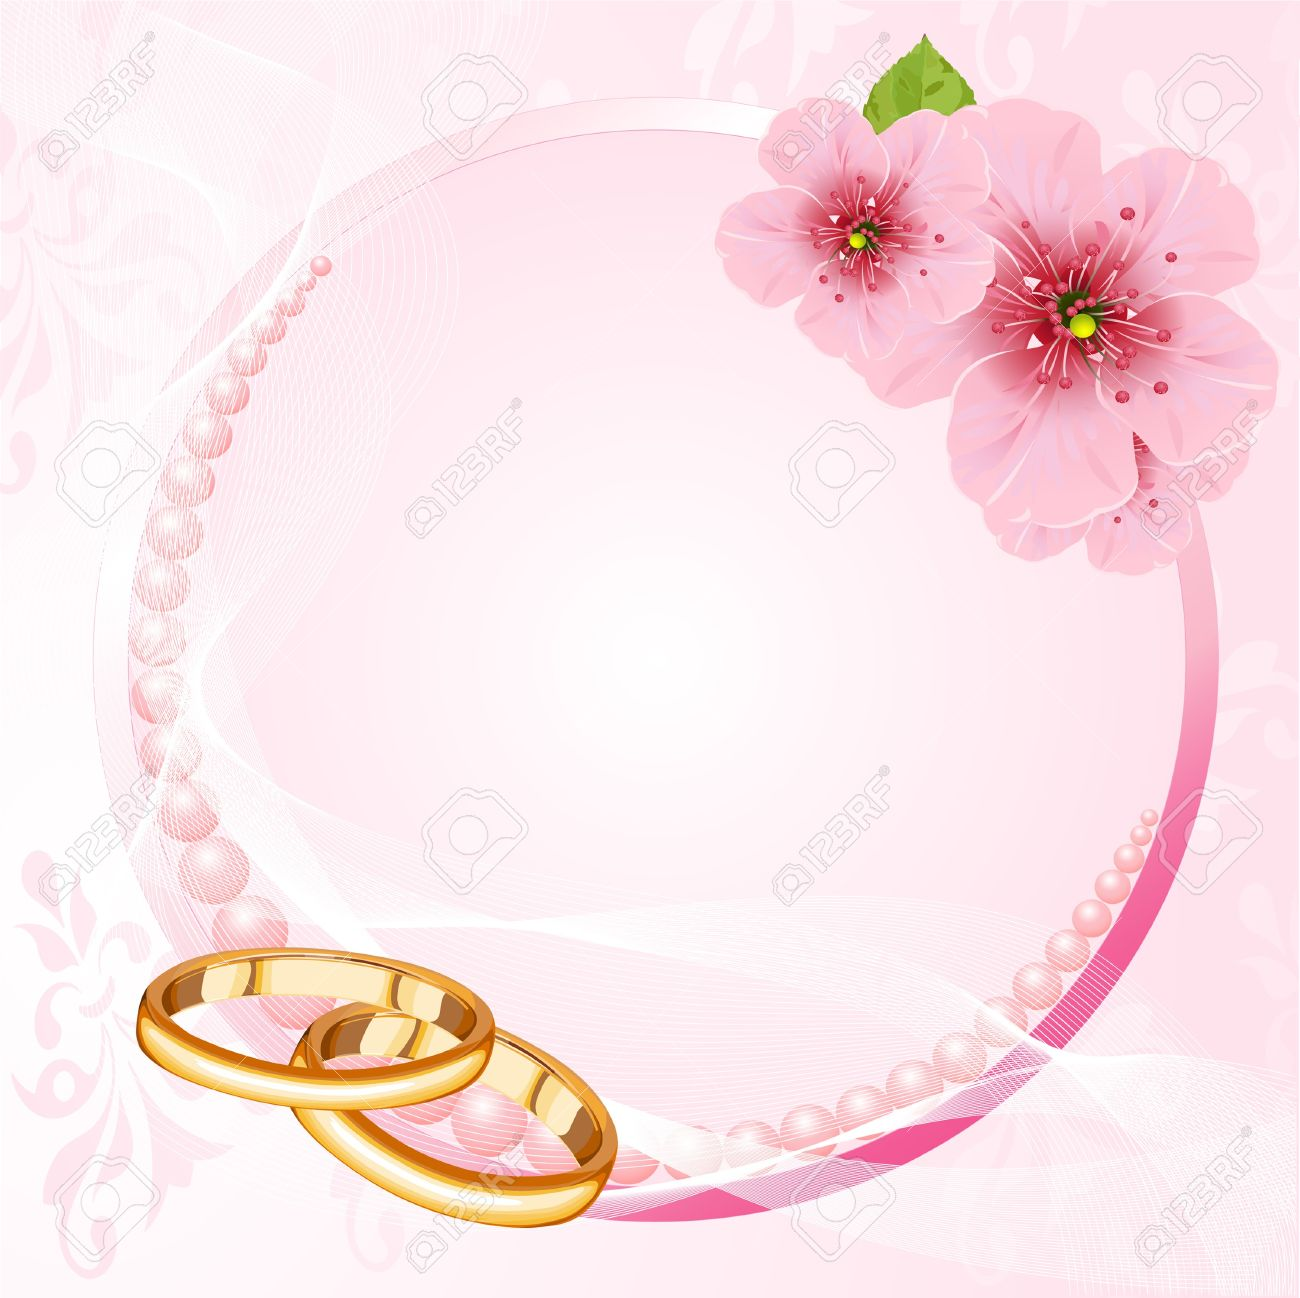 Wedding Rings And Pink Cherry Blossom Design Royalty Free Cliparts ...